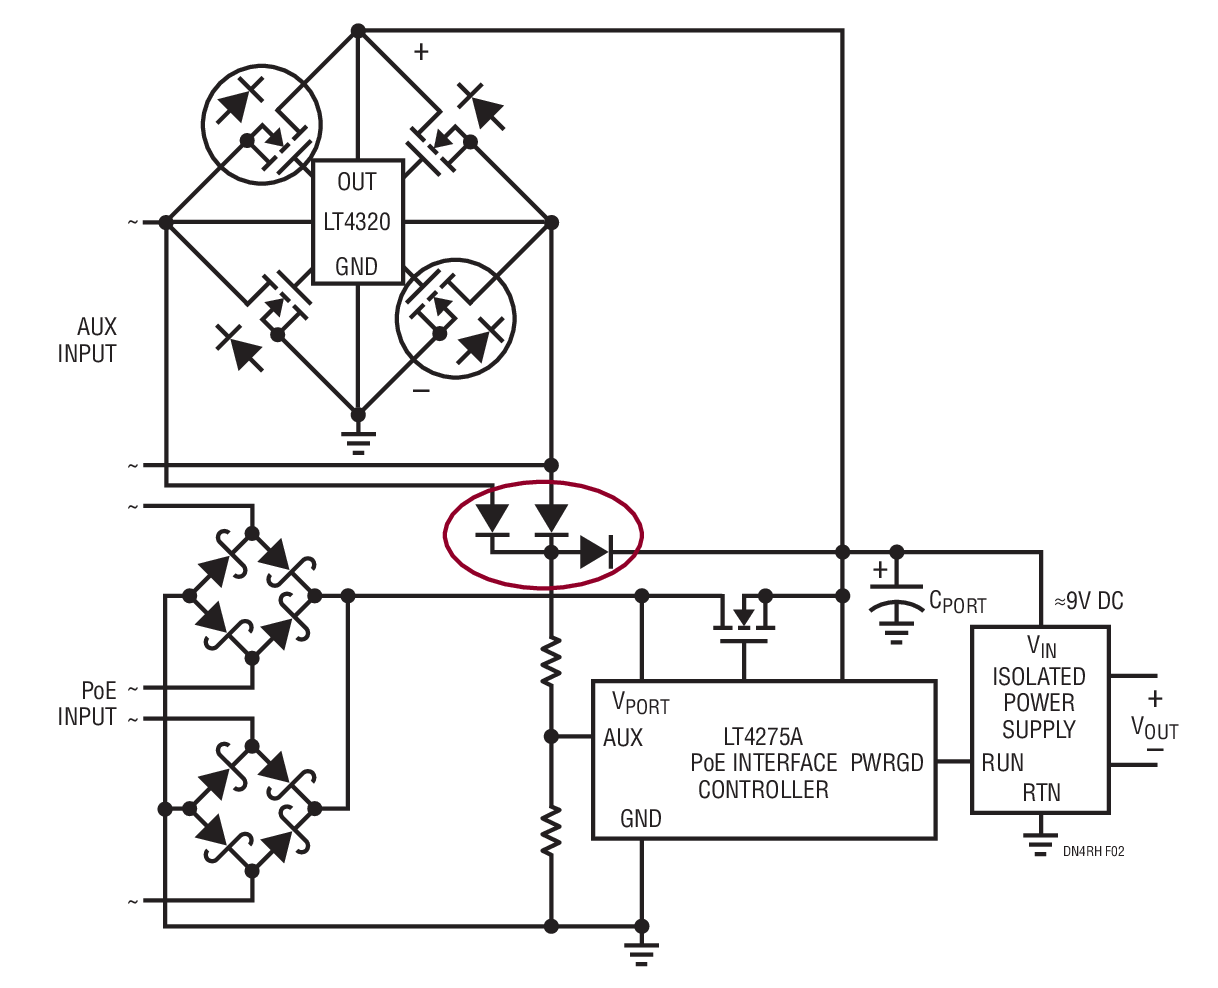 improved power architecture with no diode drops in power path [ 1218 x 988 Pixel ]